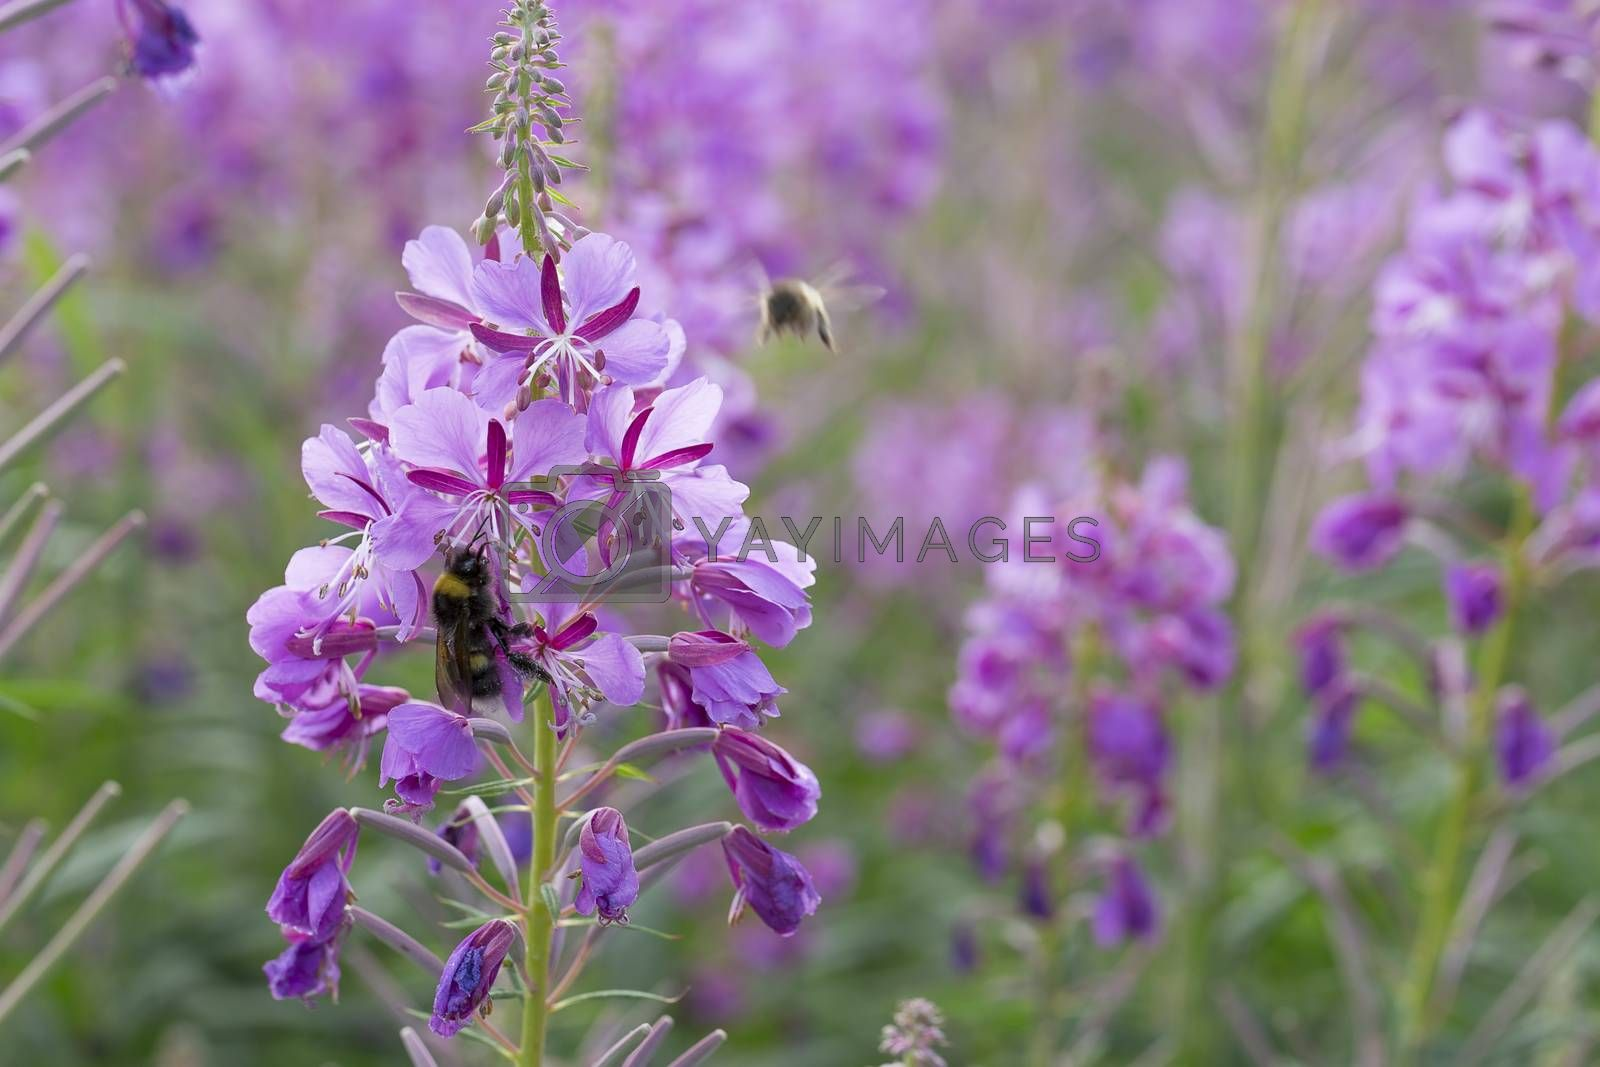 Fireweed Flowers with Bumble Bee by Emmoth